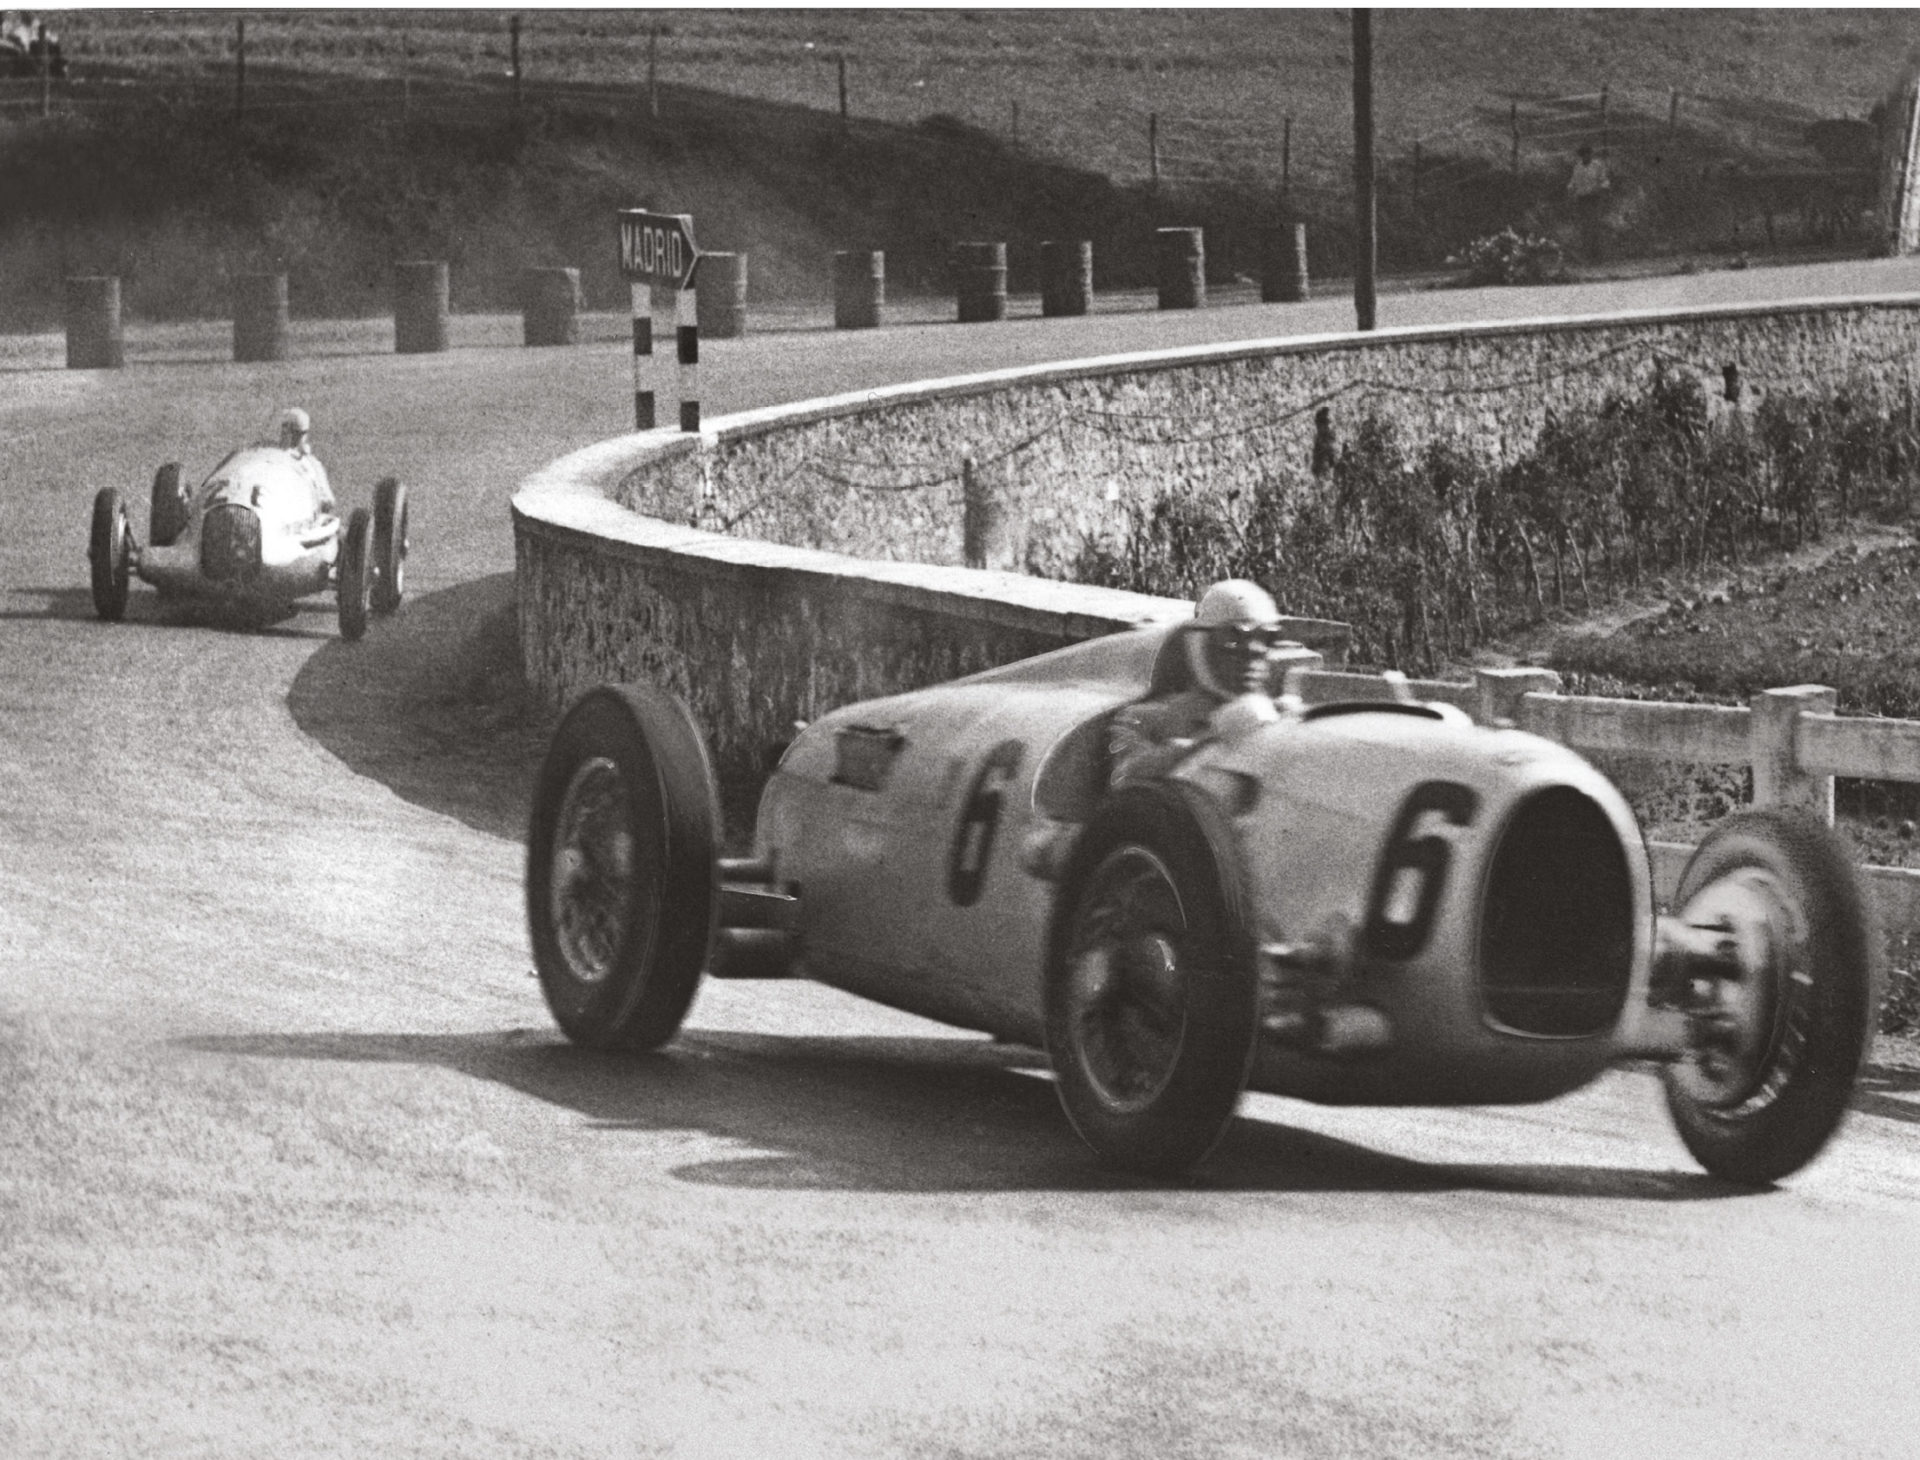 Italian Achille Varzi handles Auto Union's B-type in 1935. Mercedes' W25B is behind in the hands of Rudolf Caracciola